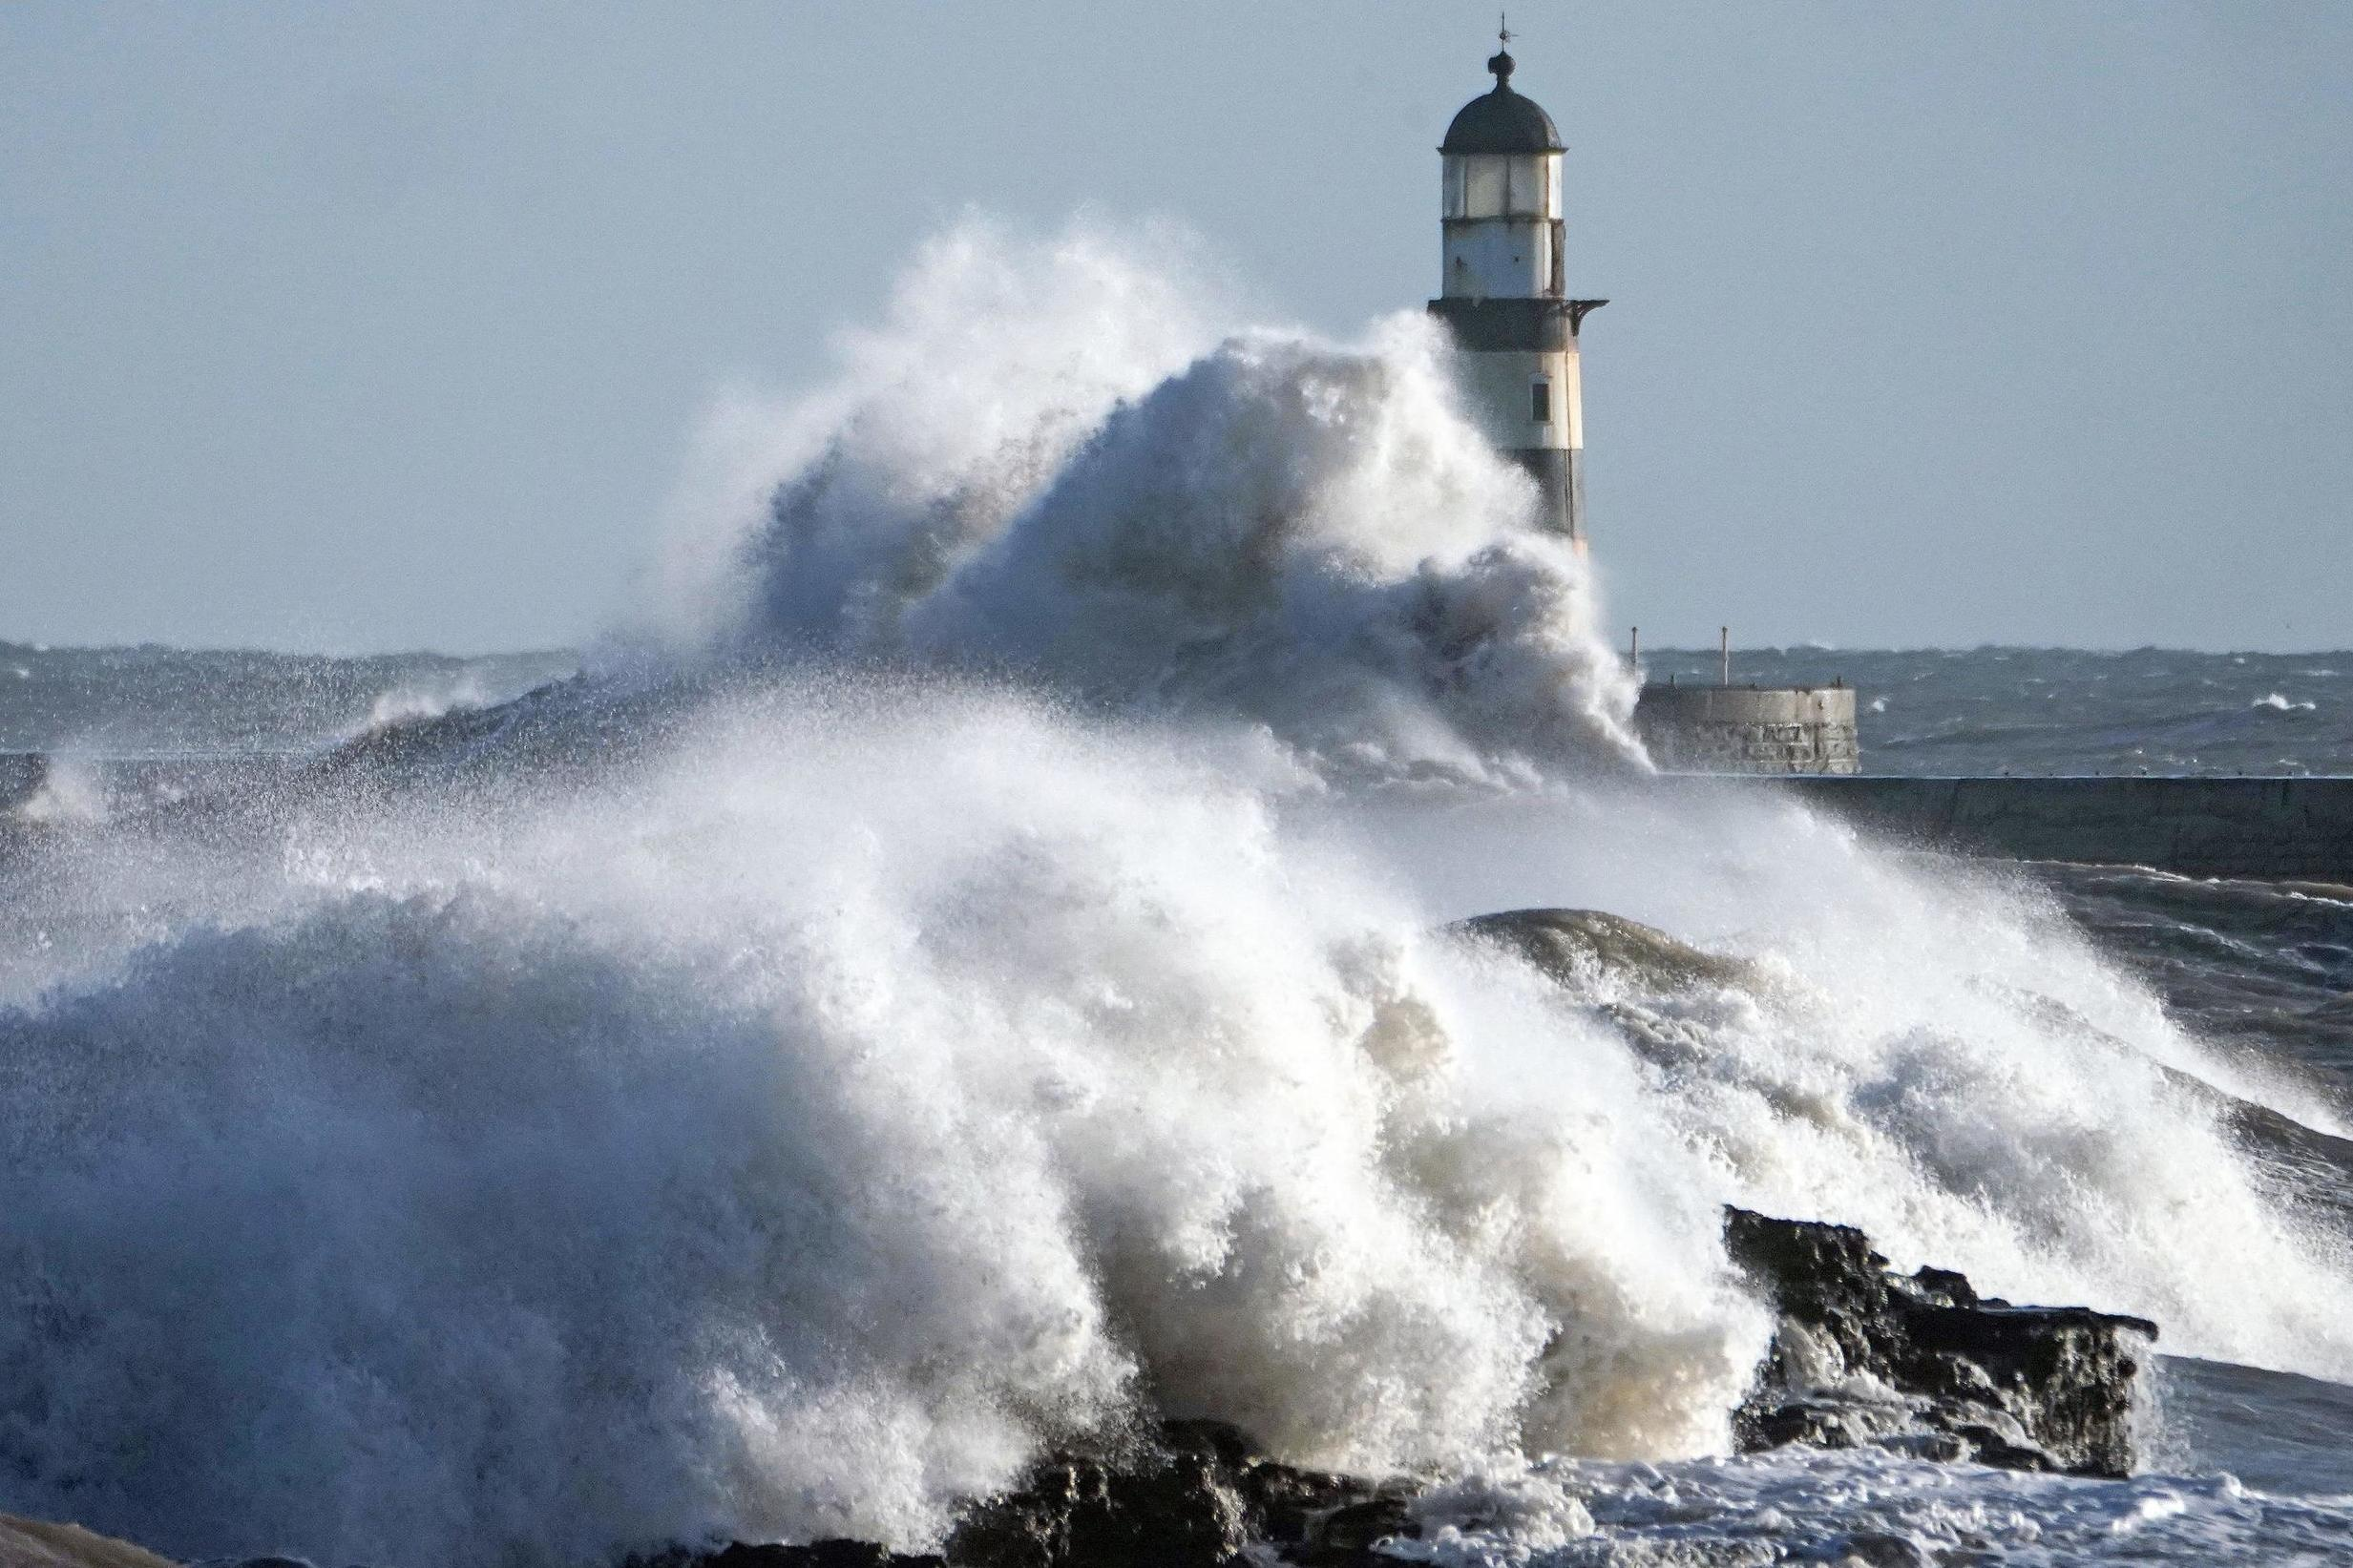 UK weather: Winds of up to 100mph expected to hit with yellow warnings in place